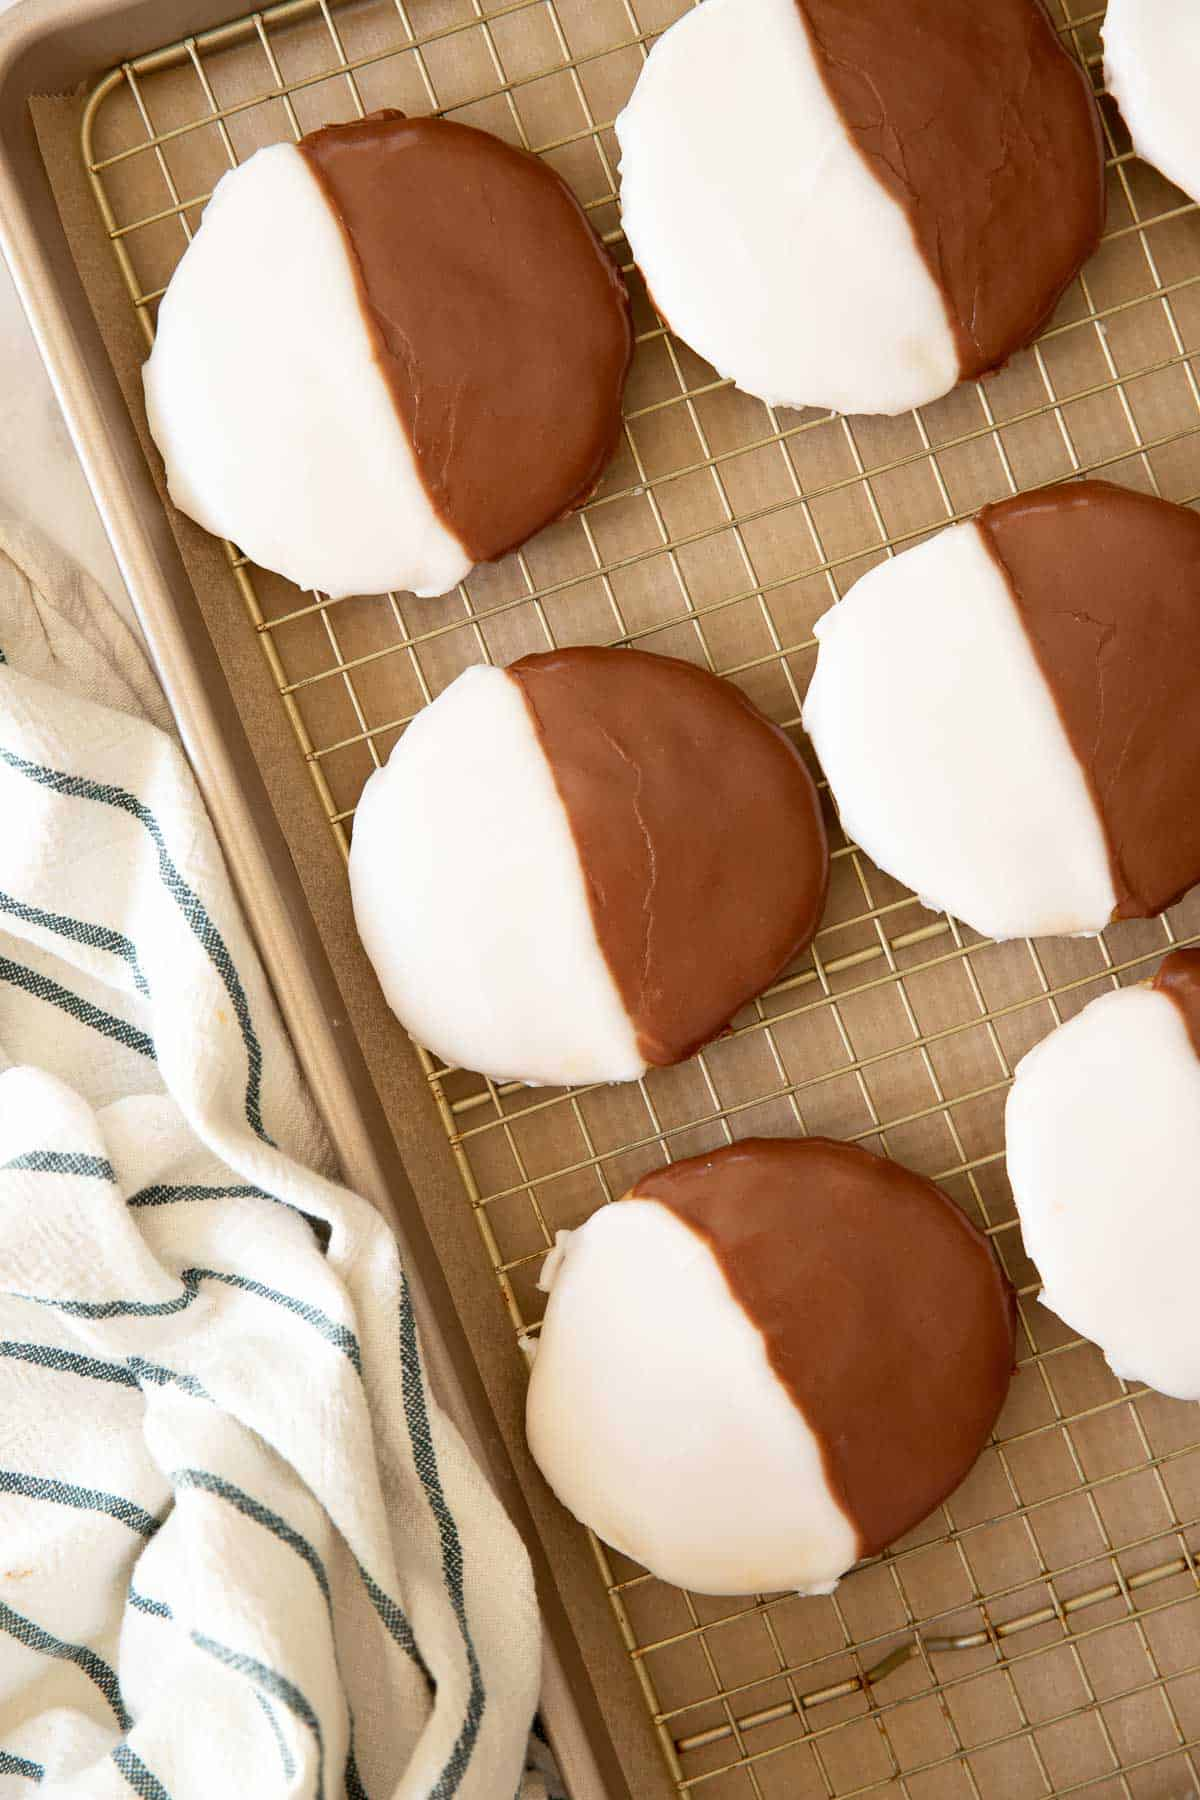 Black and white cookies on a baking sheet tray.